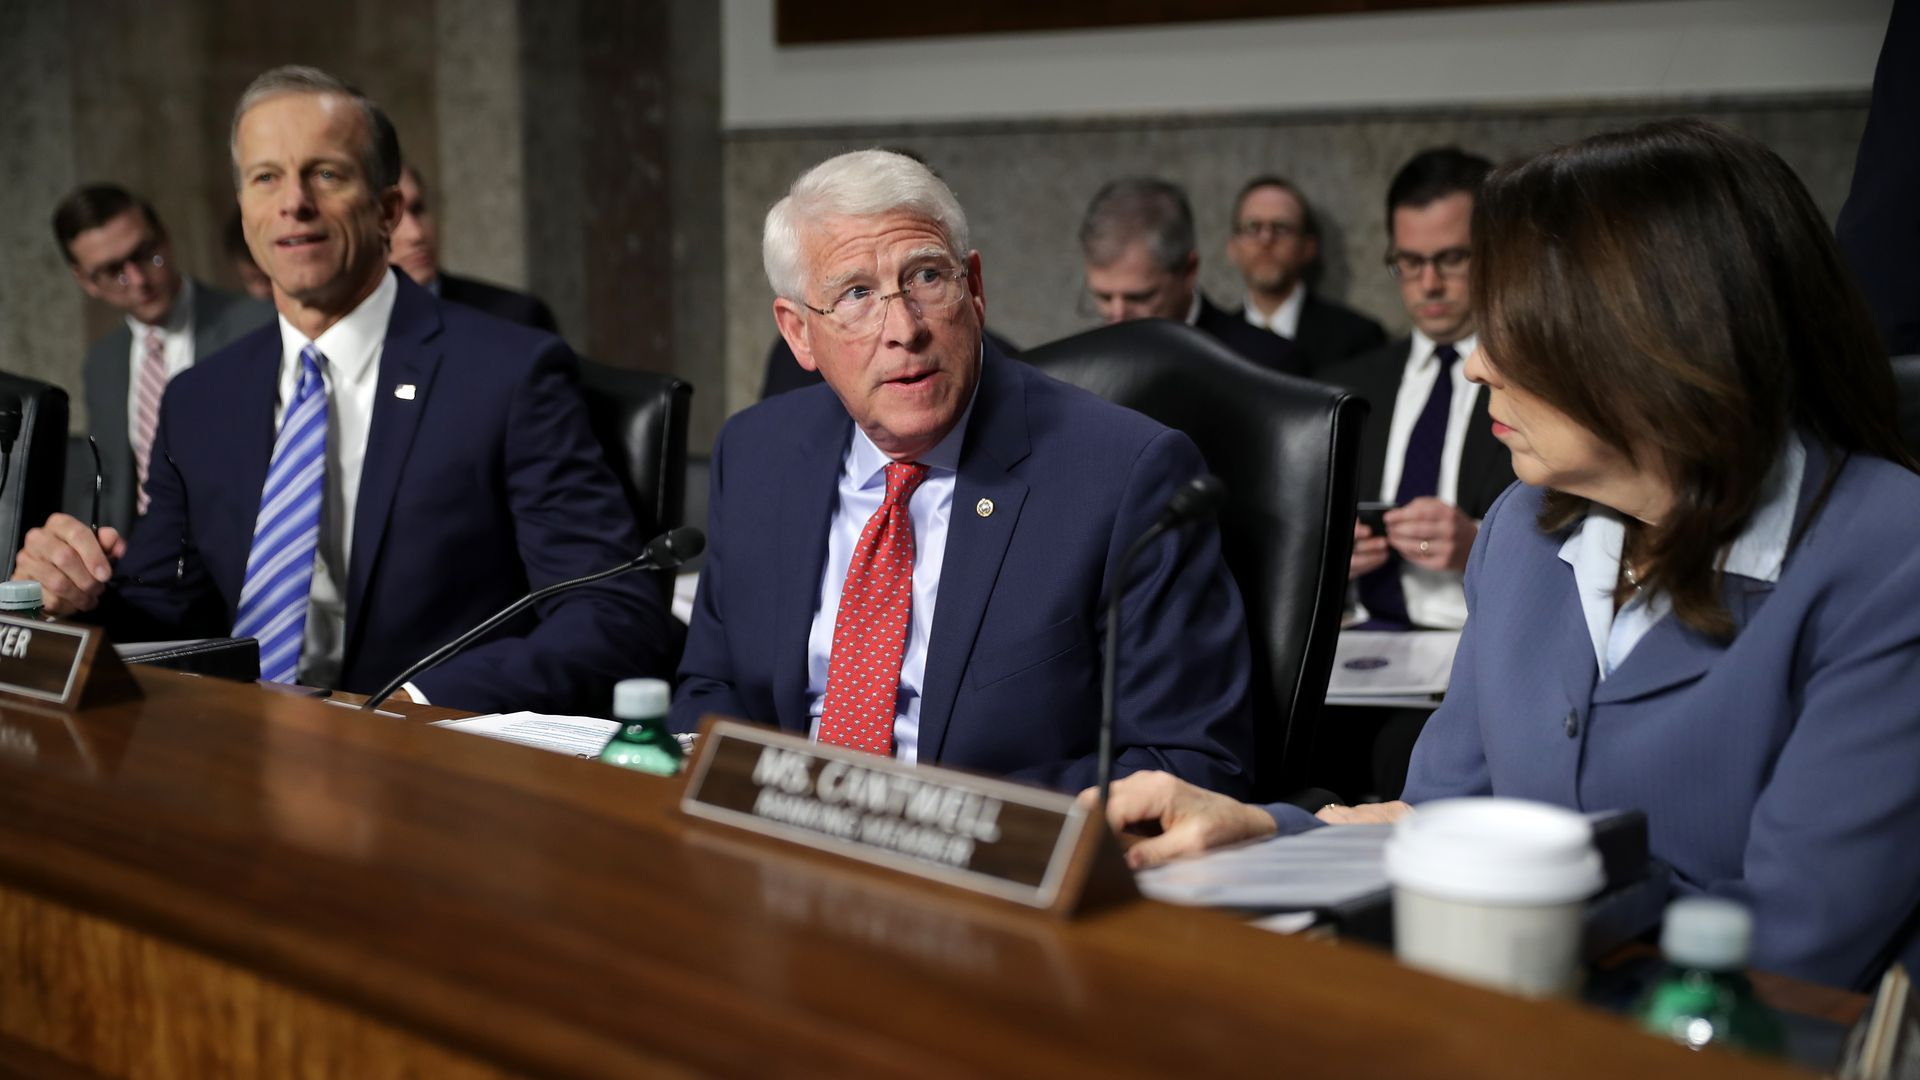 Senate Commerce Committee chairman Roger Wicker